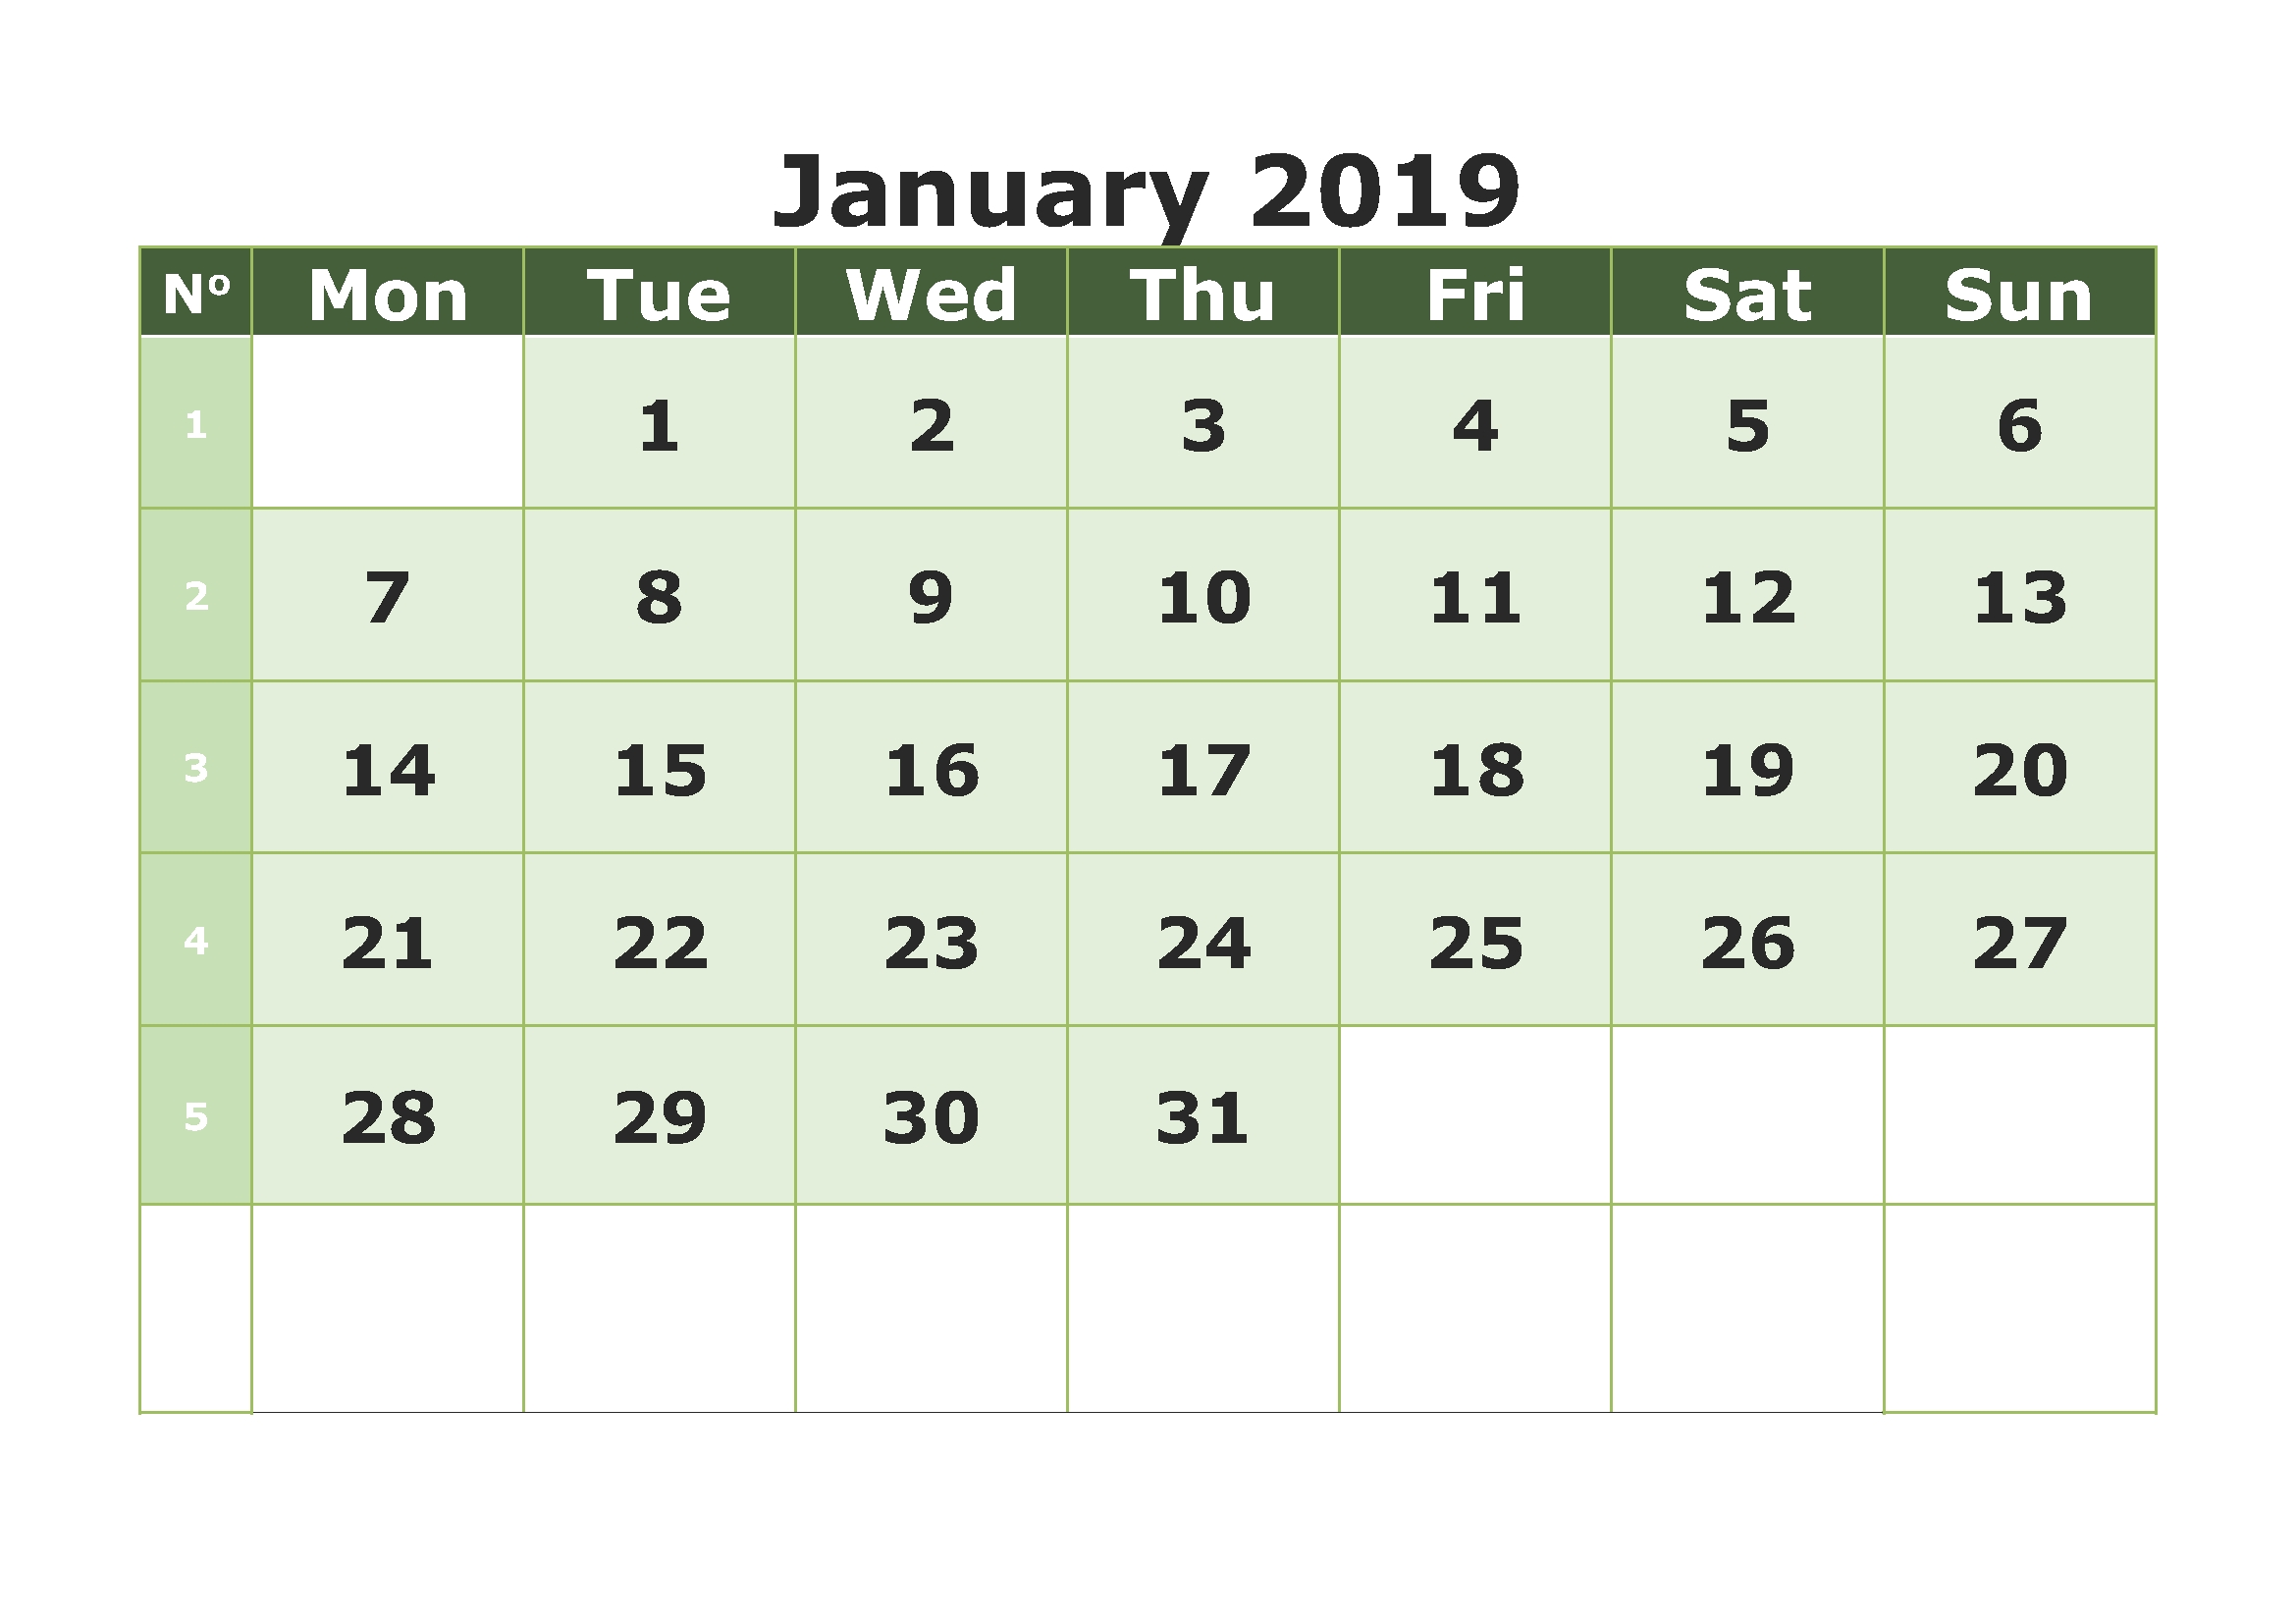 january 2019 calendar printable templates site provides calendar::January 2019 Calendar Printable